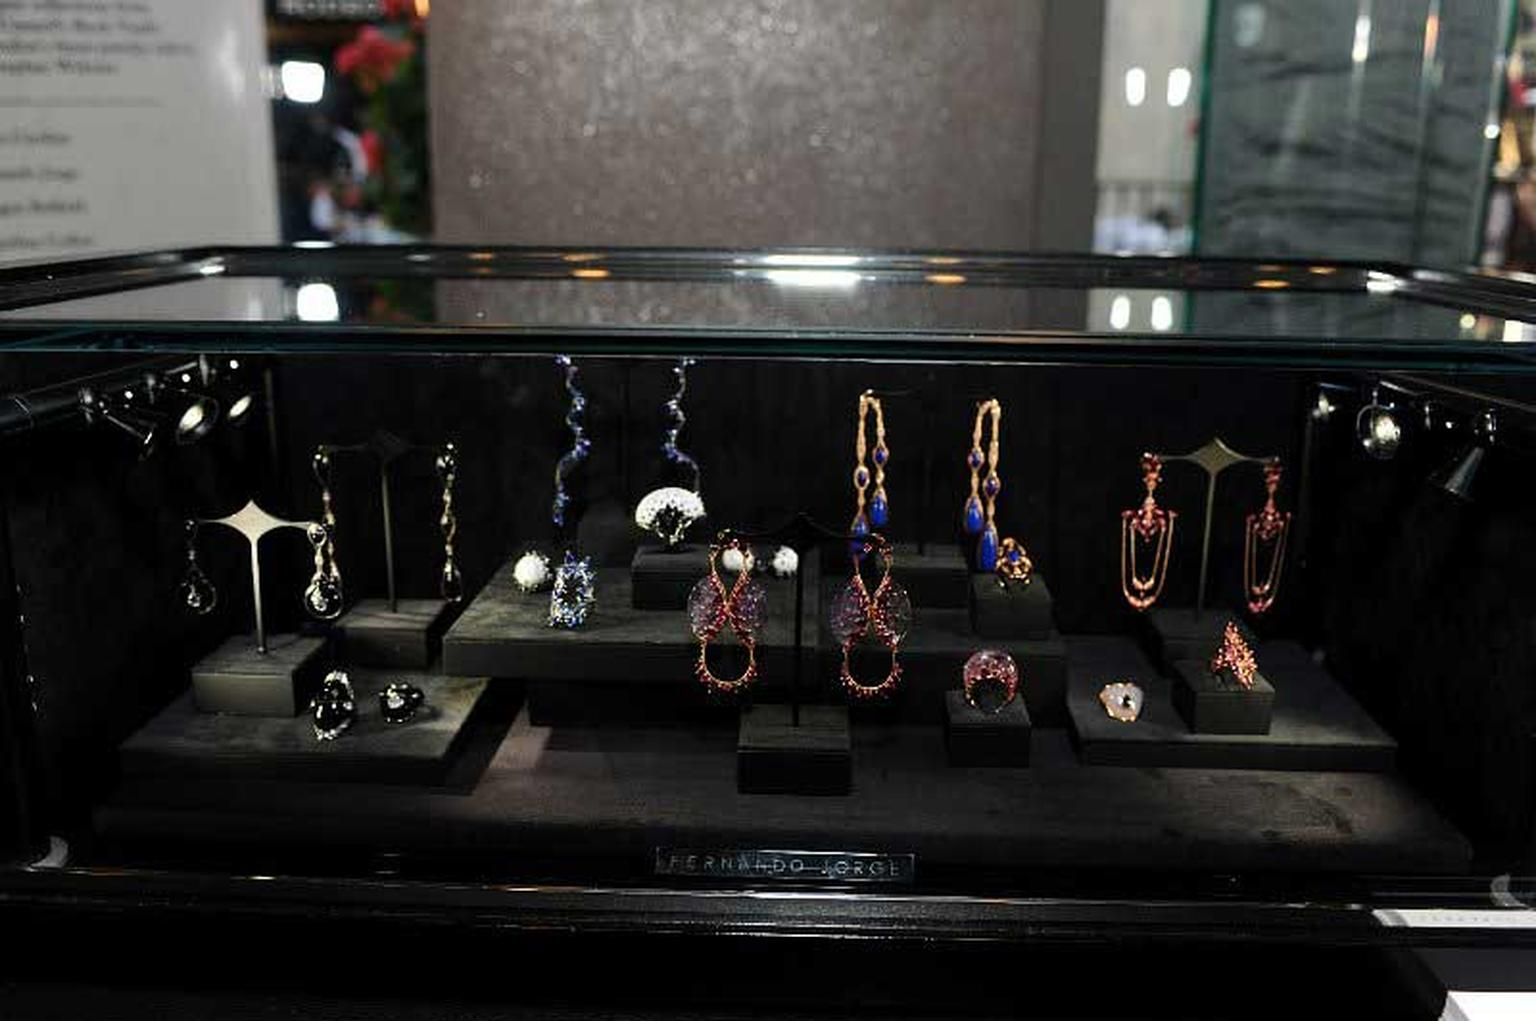 Fernando Jorge displays his colourful jewels at the pop-up Rock Vault store in LA.